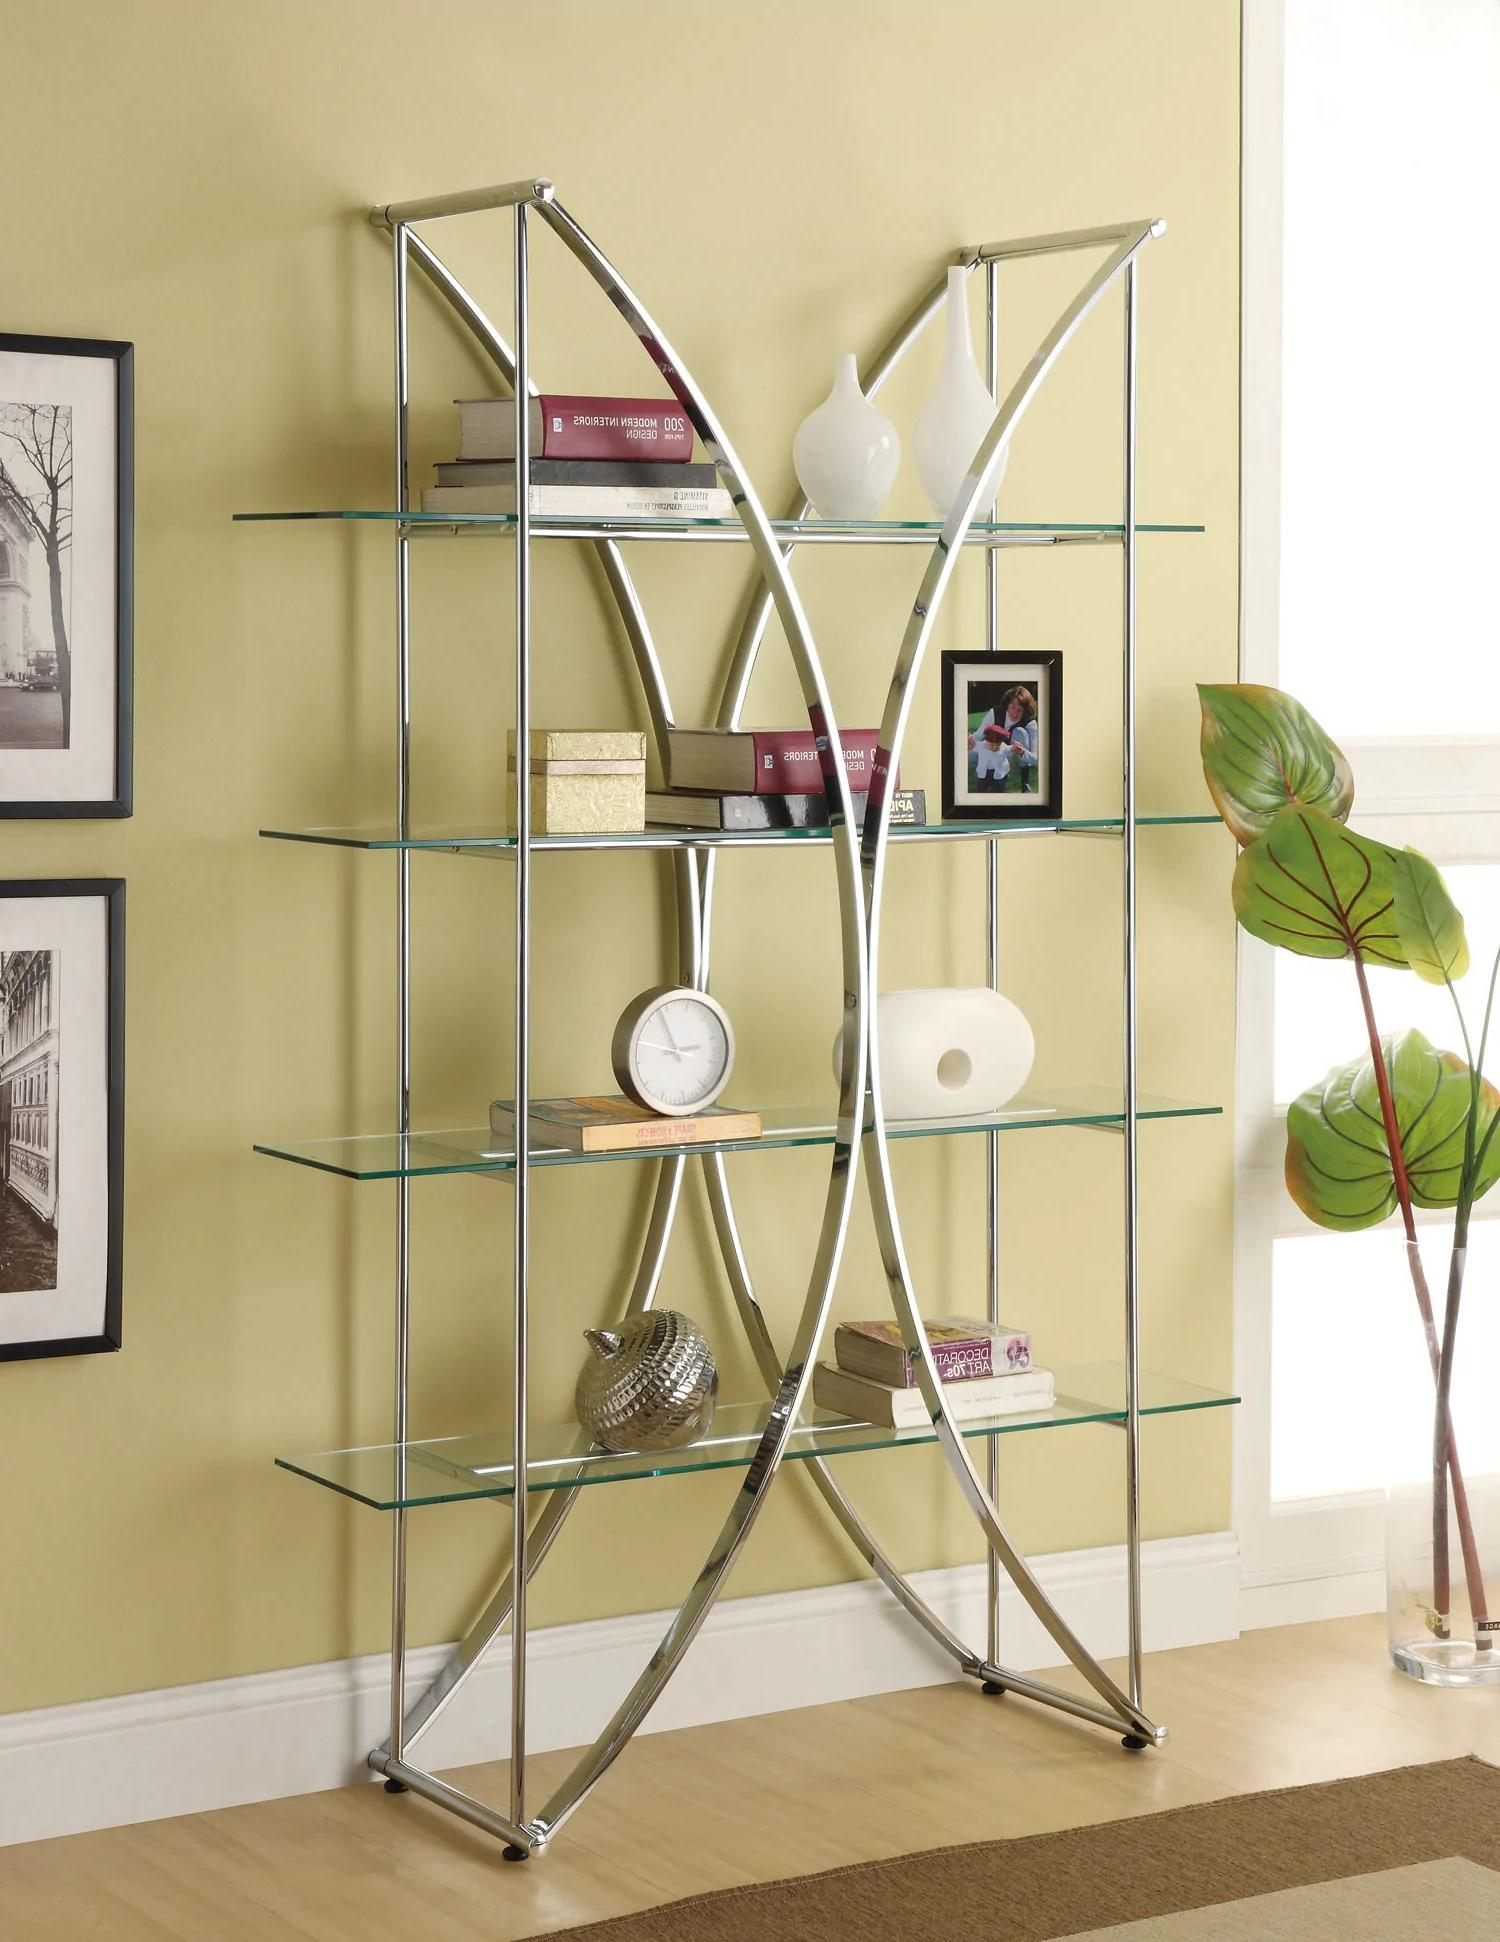 Glass shelf storage for decorative items